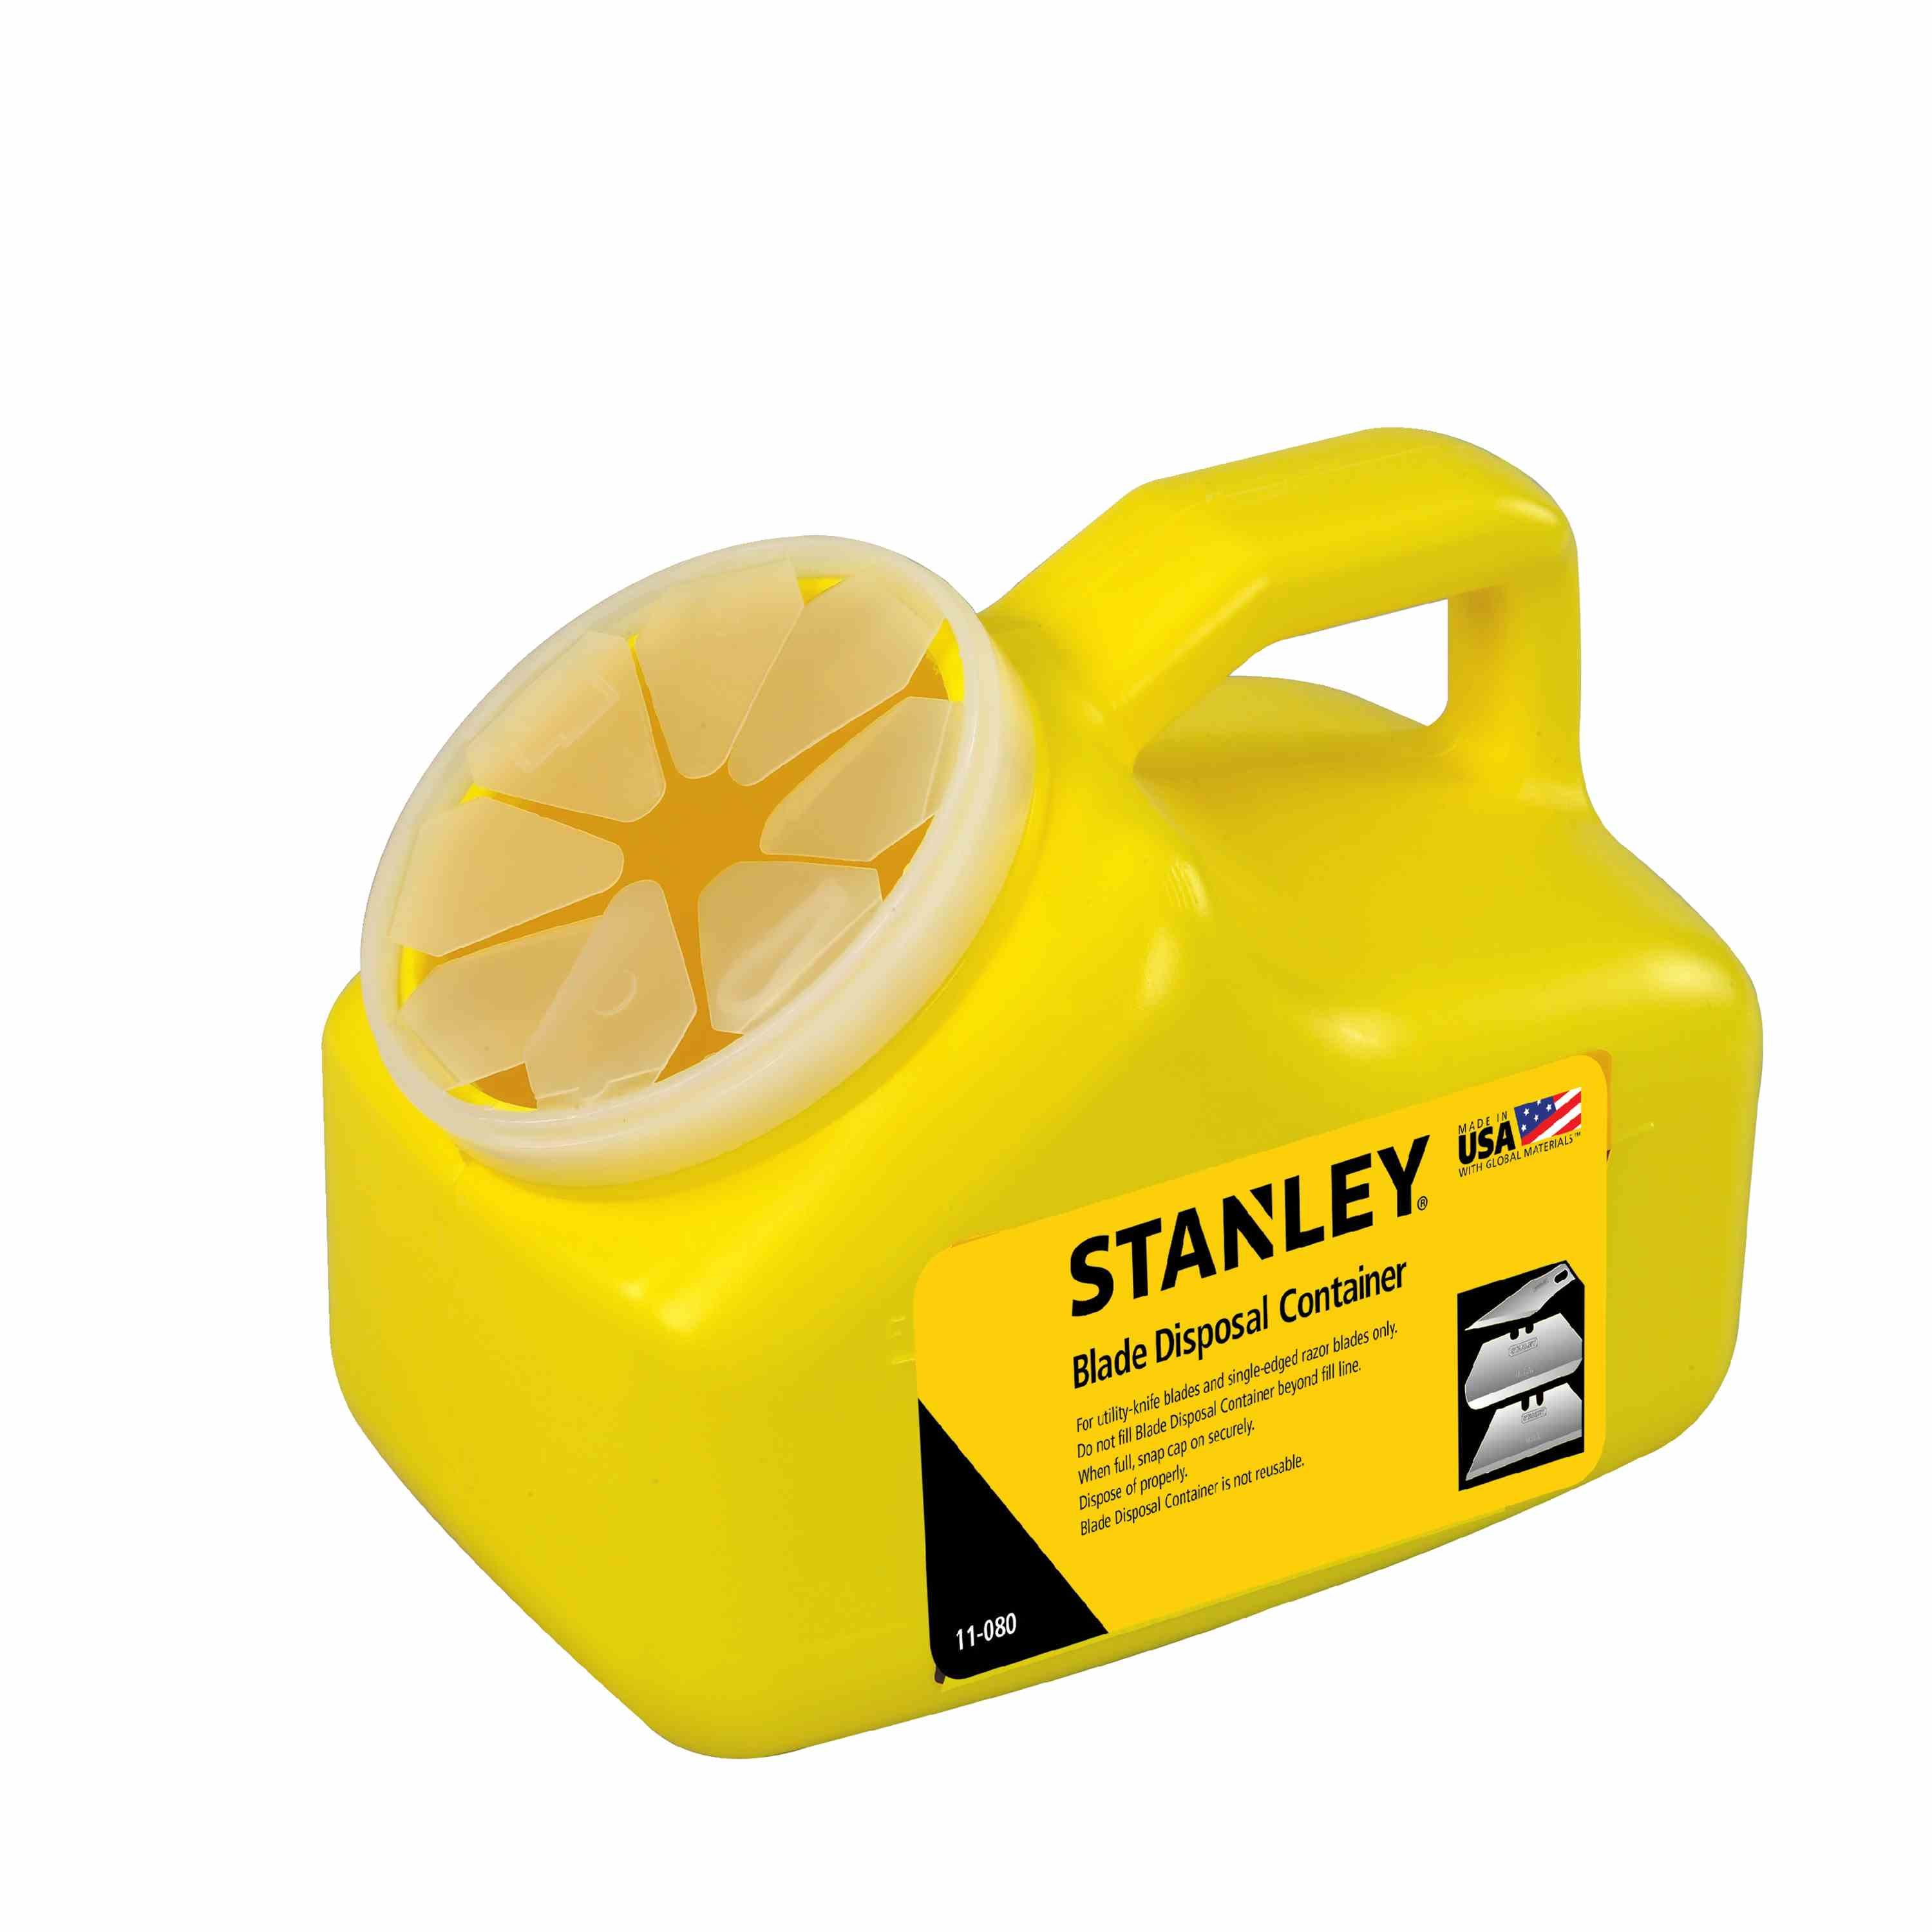 Stanley Tools - Blade Disposal Container - 11-080